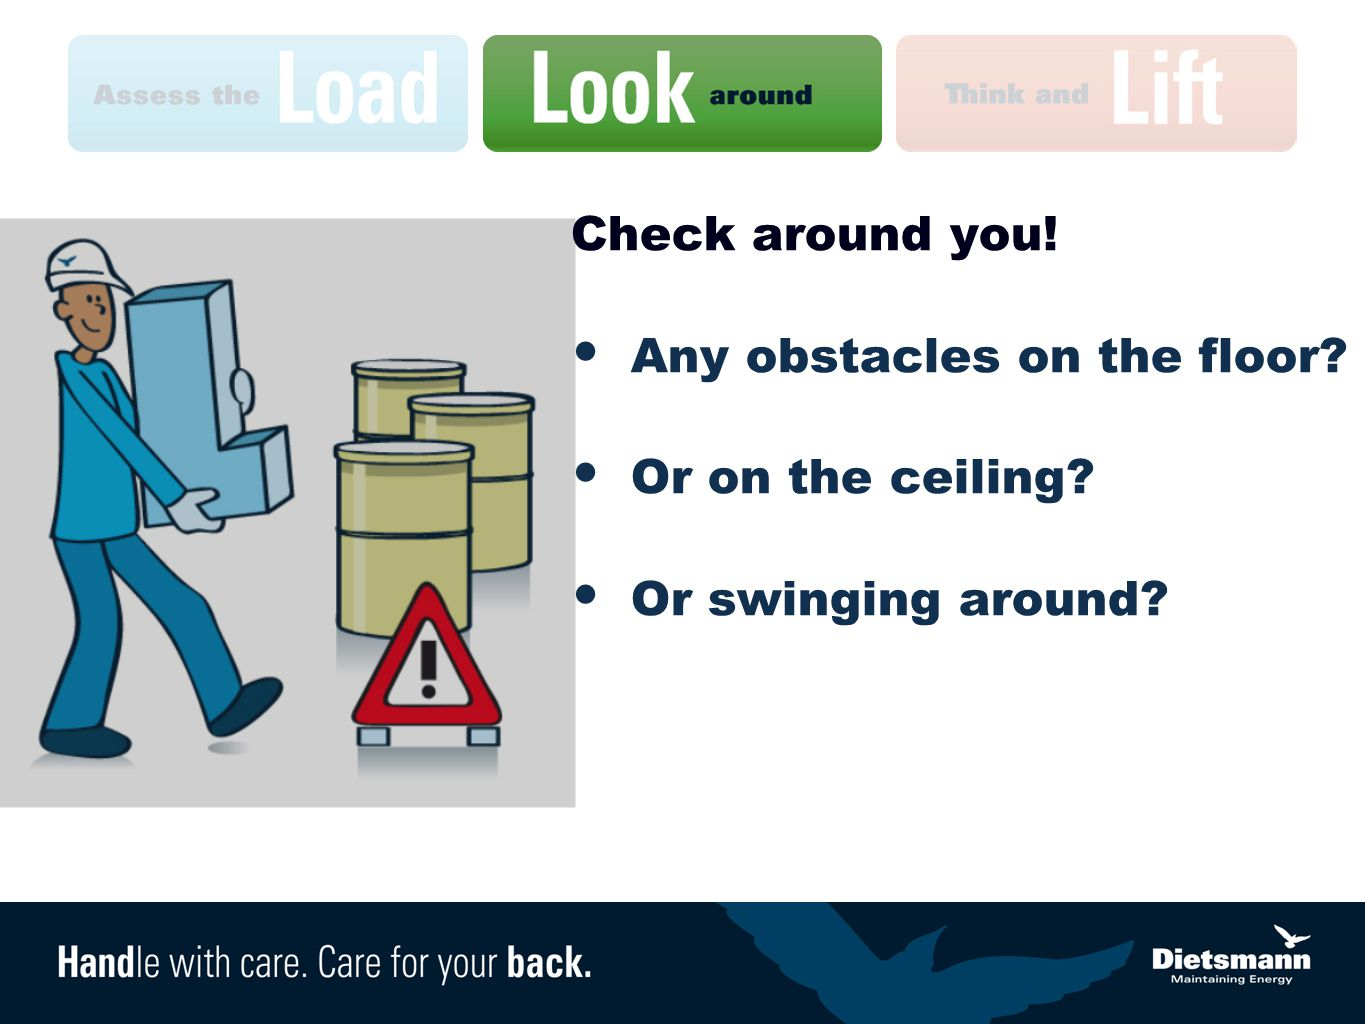 Check around you! Any obstacles on the floor Or on the ceiling Or swinging around